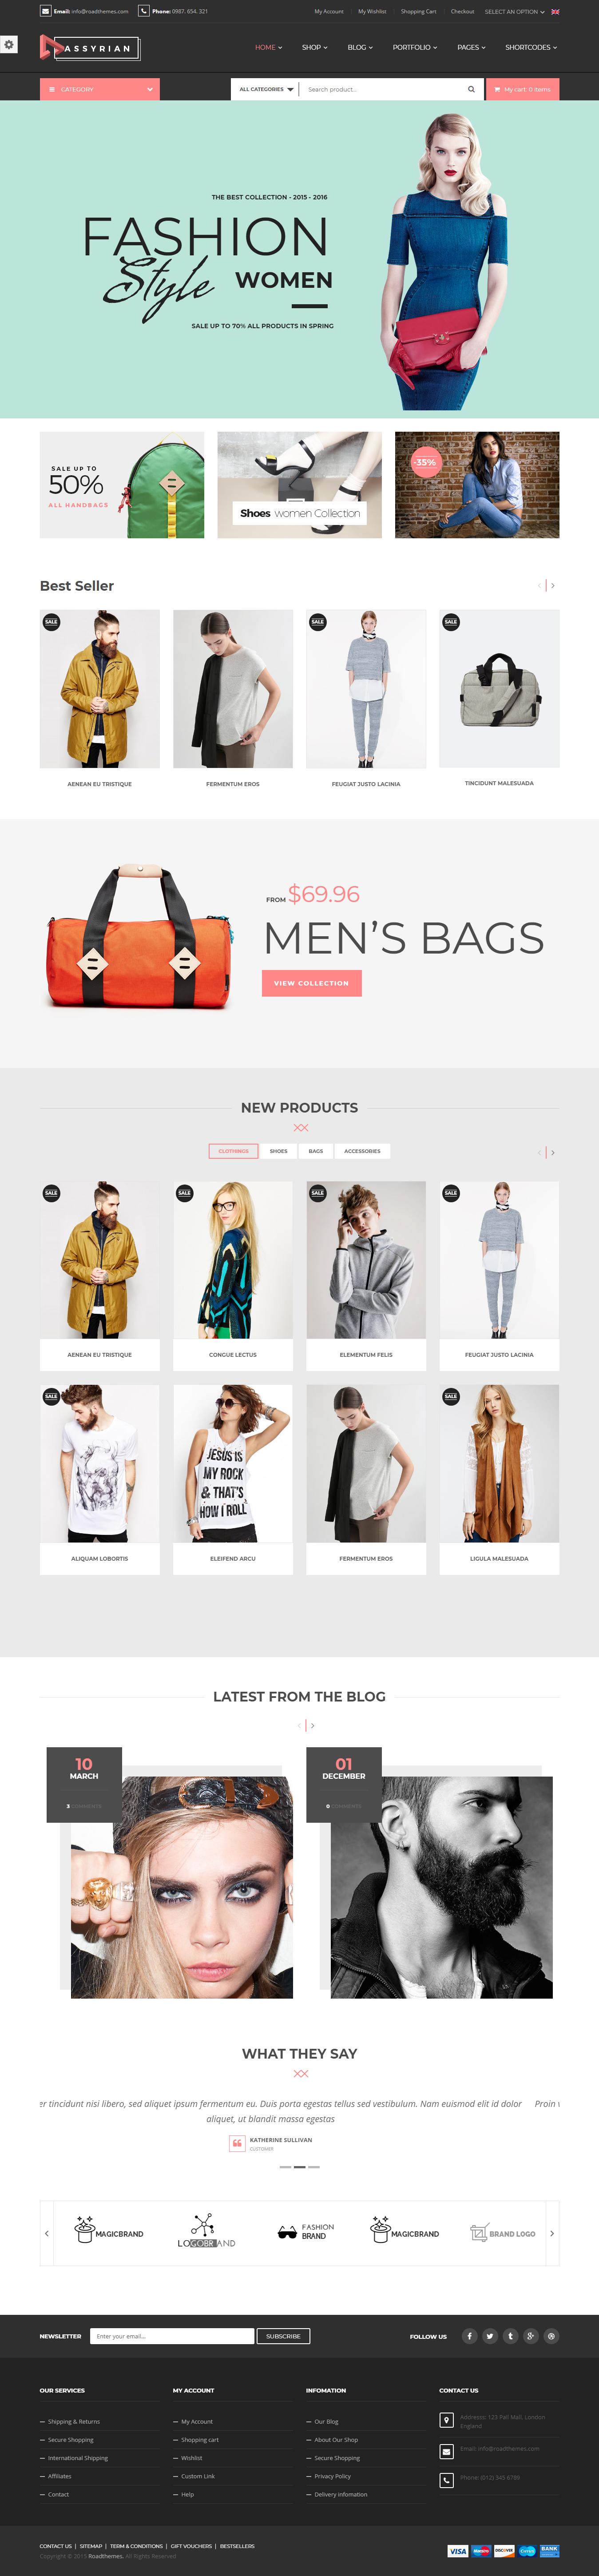 assyrian best premium fashion wordpress theme - 10+ Best Premium Fashion WordPress Themes